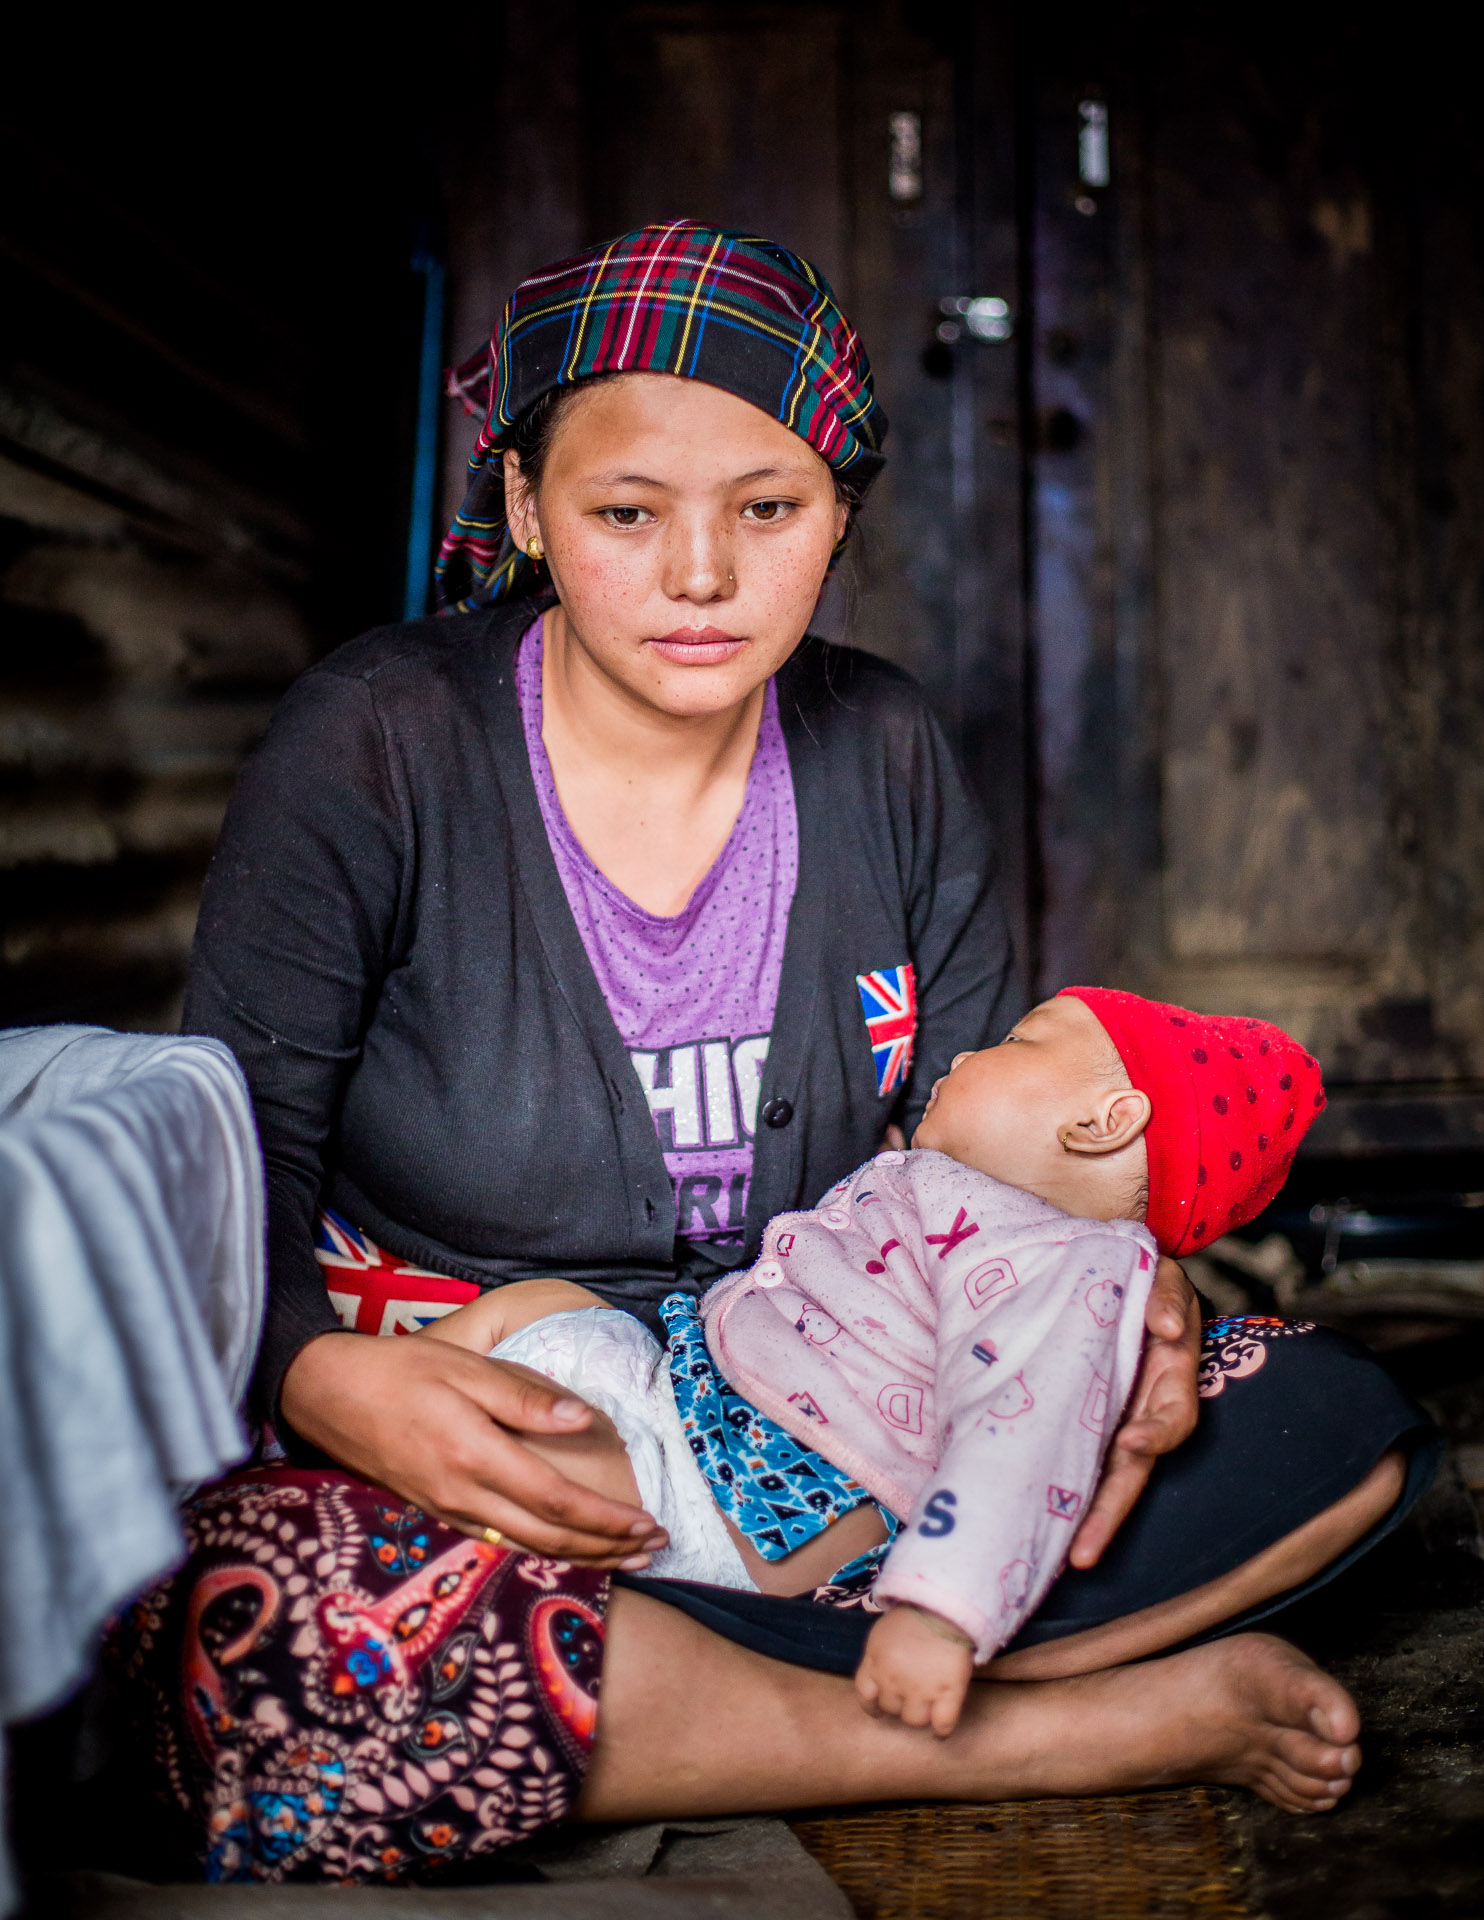 Mother who was pregnant during the eathquake who lost her 25 year old husband. Now she is left alone with her 3 months old boy..